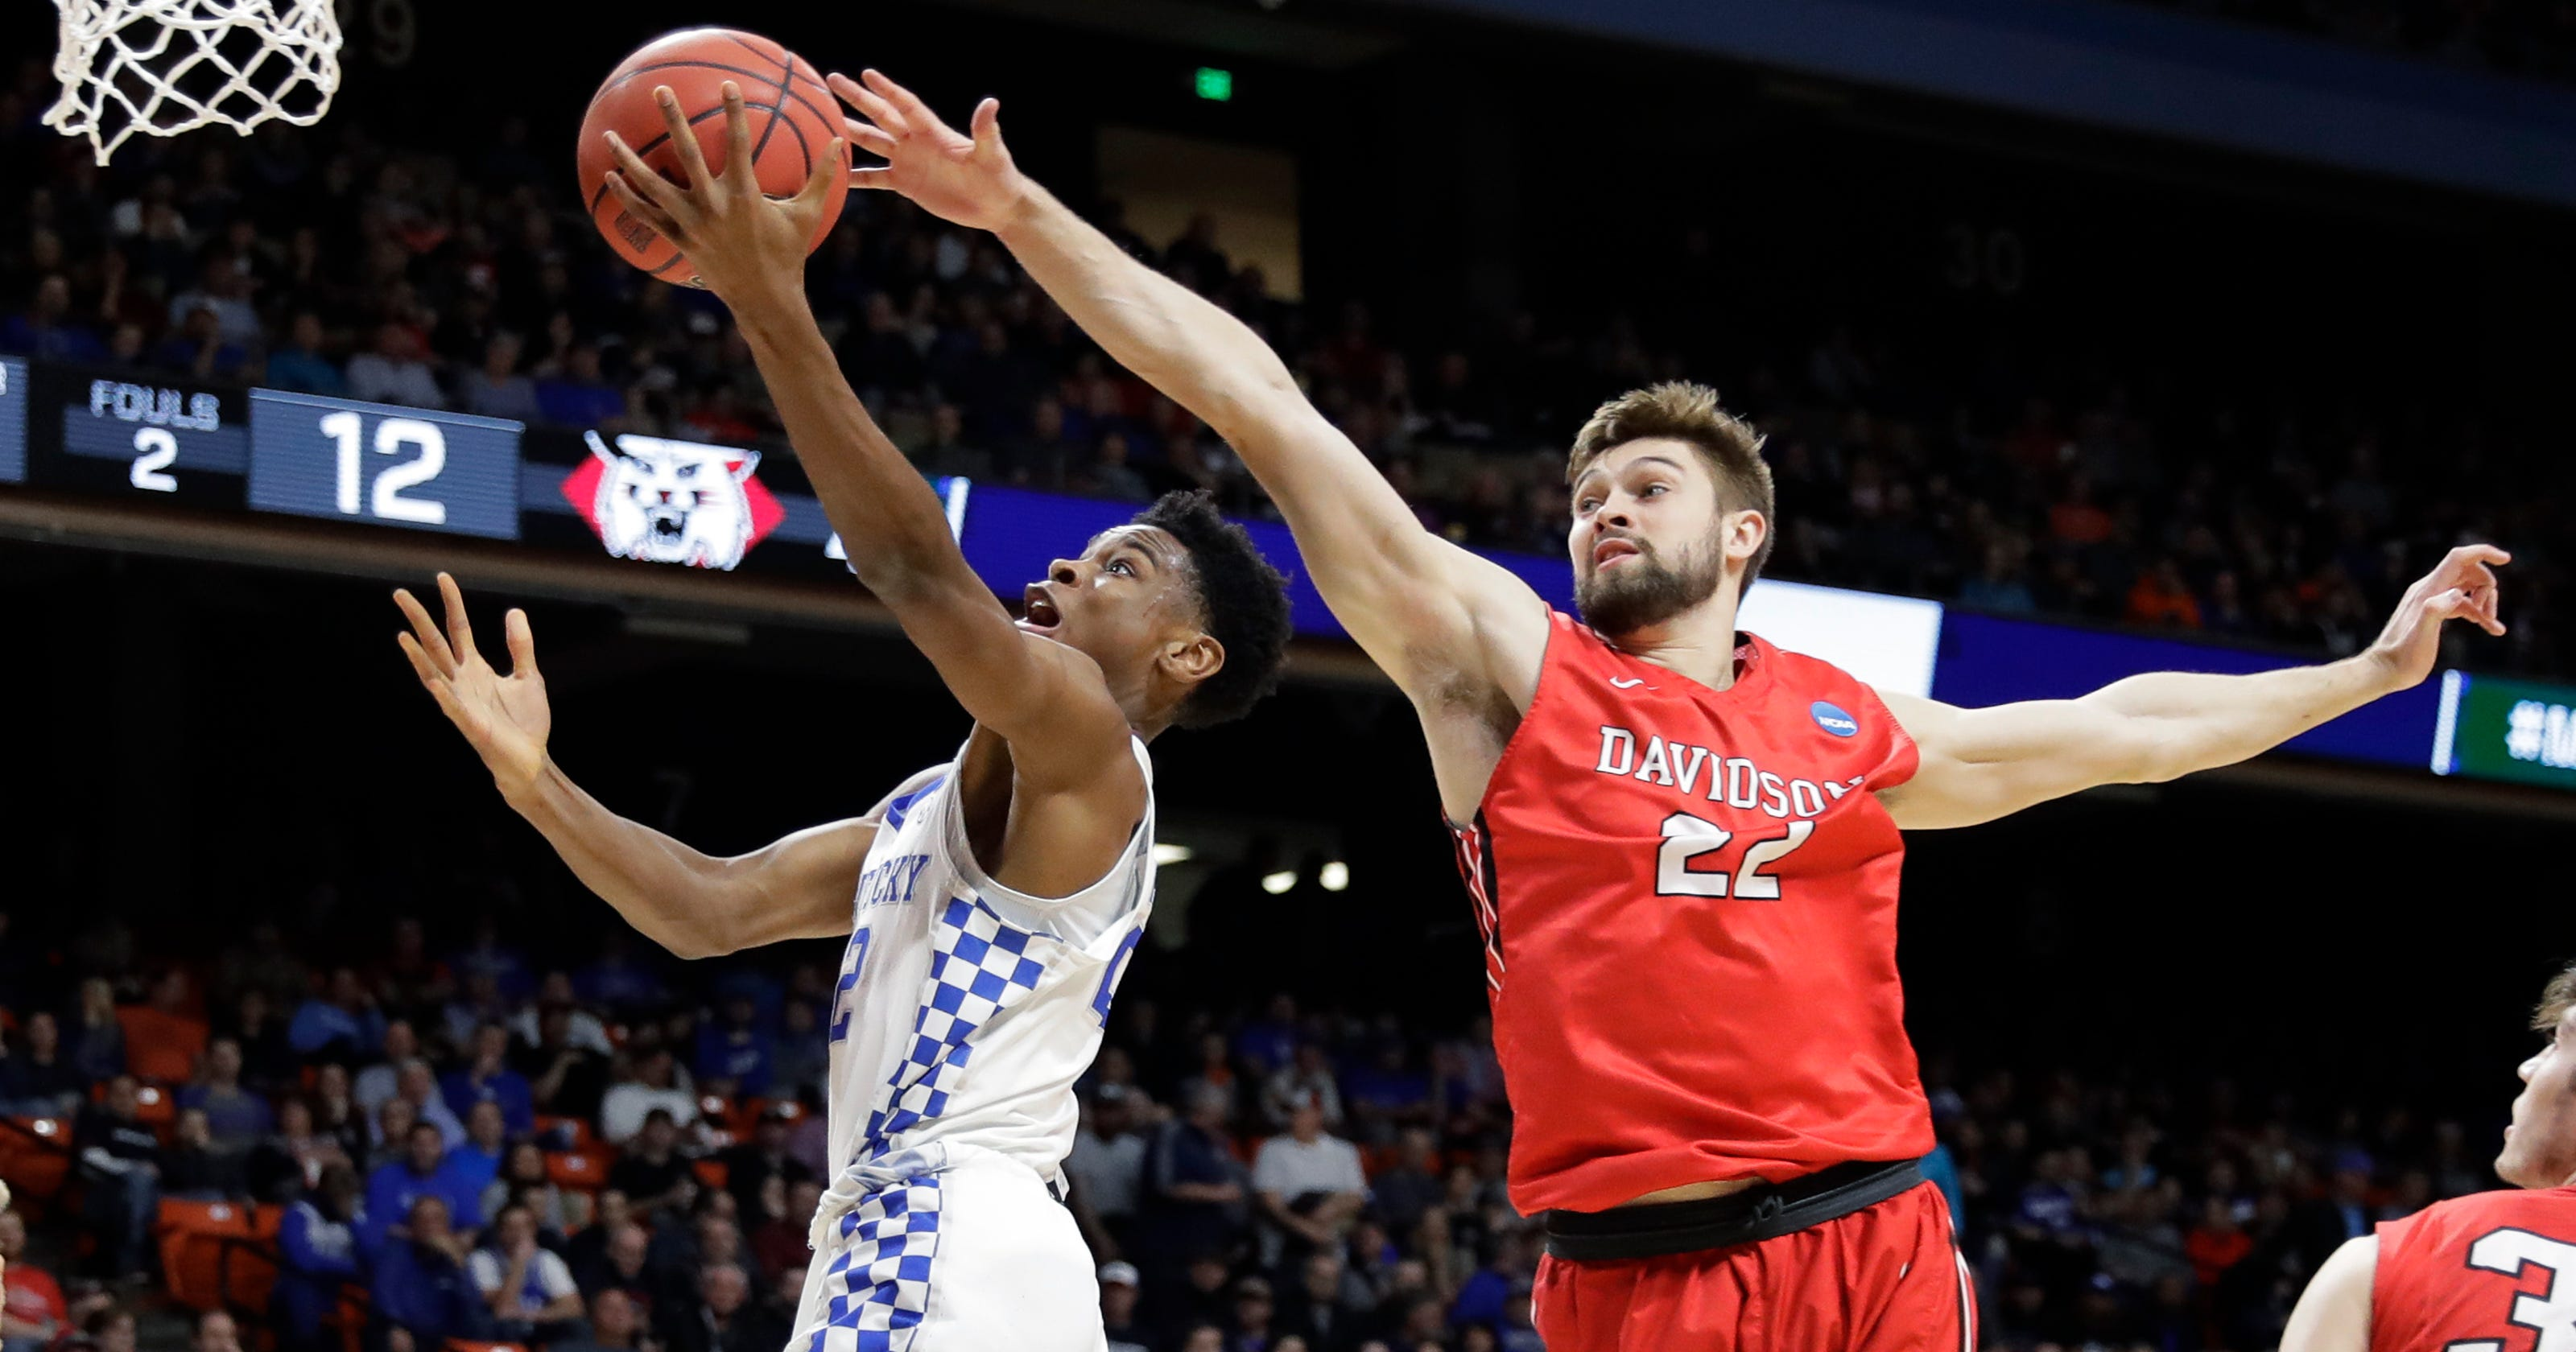 Who needs 3s? Not Kentucky in 78-73 win over Davidson